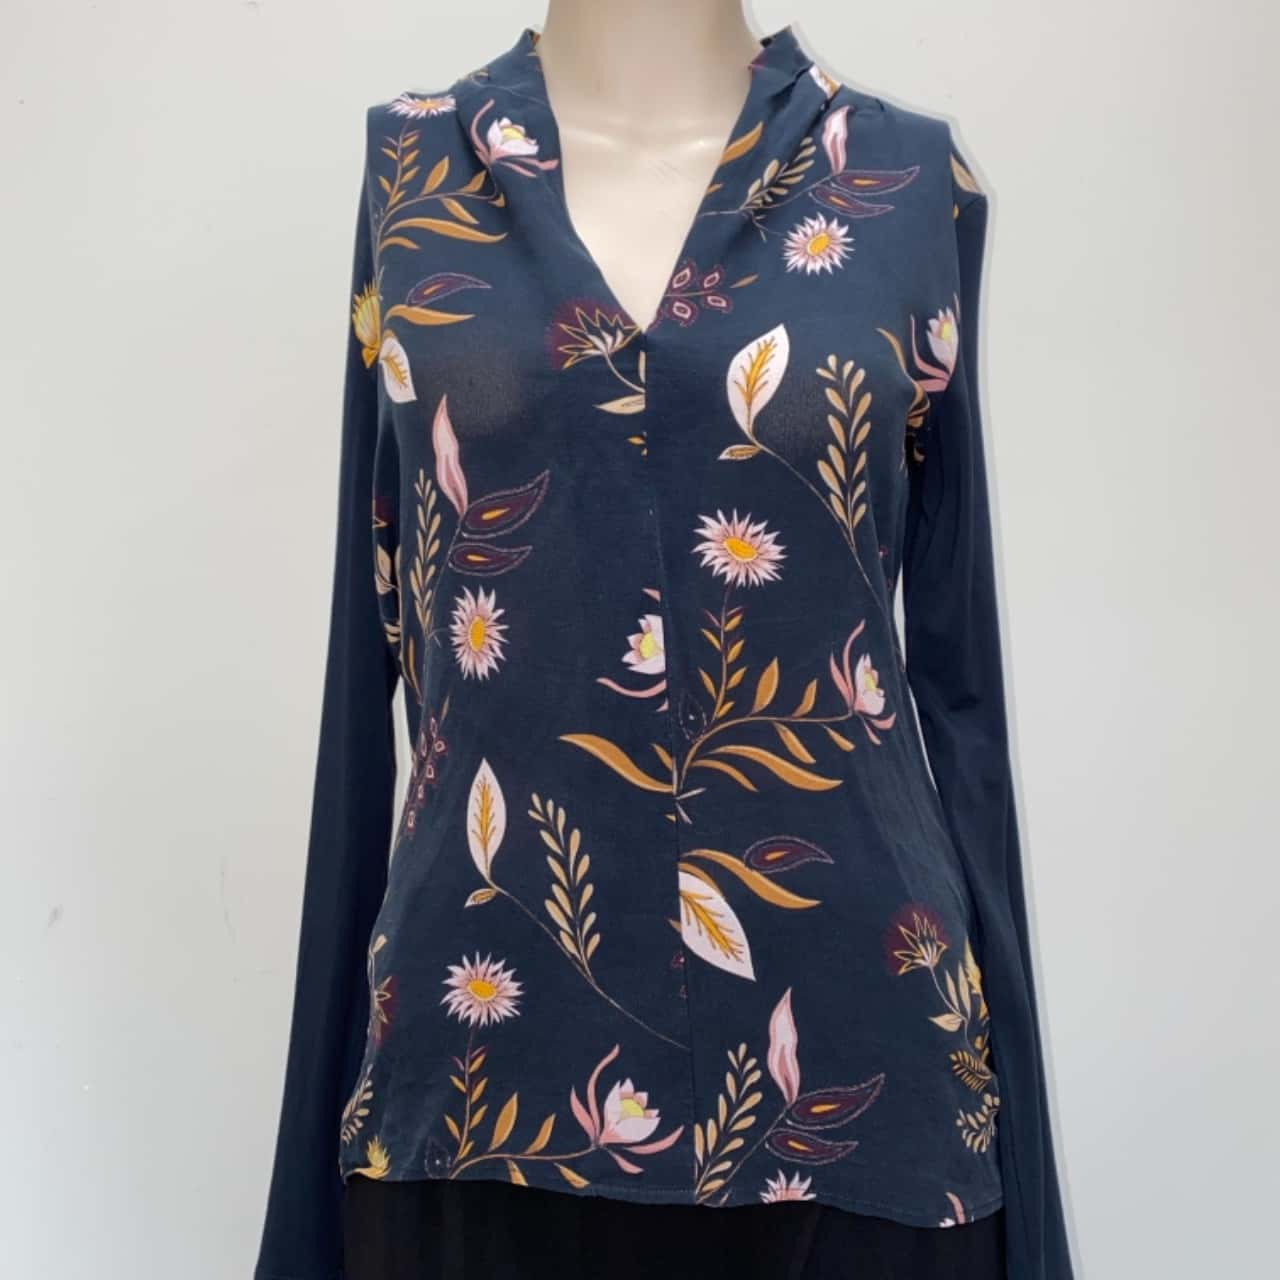 ** REDUCED ** David Lawrence Women's Size S Black Floral Long Sleeve Top